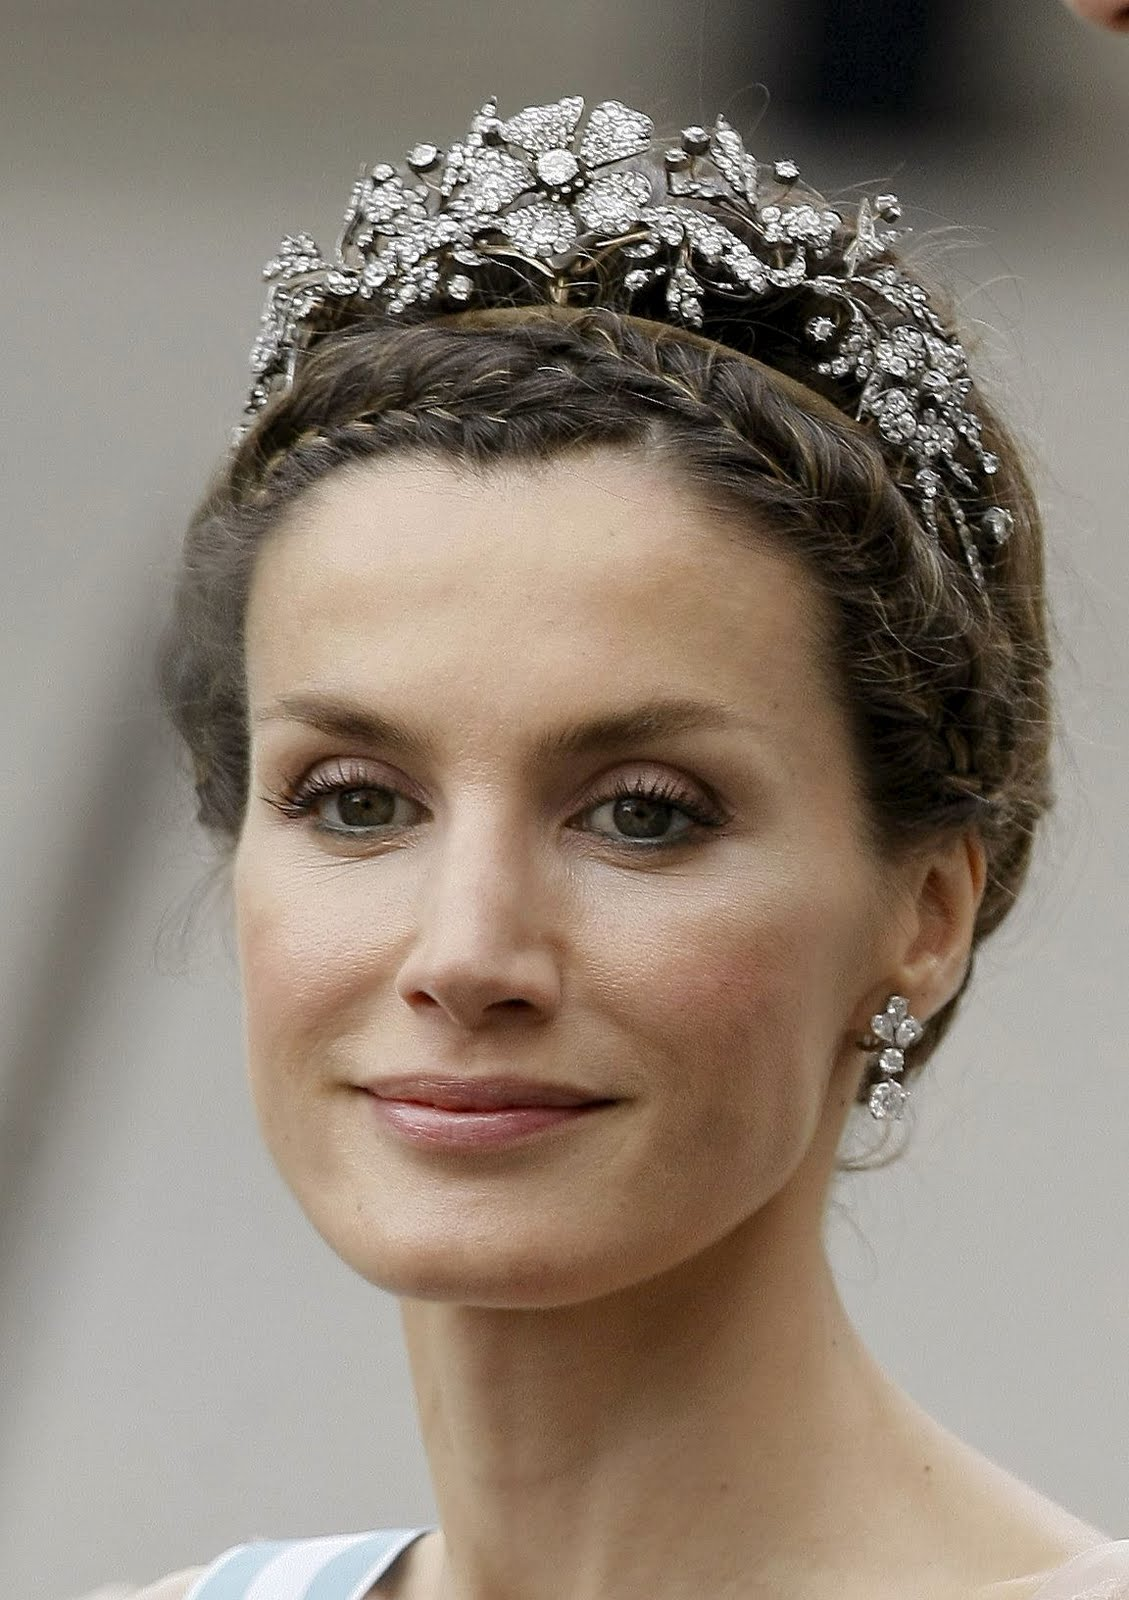 http://4.bp.blogspot.com/_KMZsVauhWU4/TCHcEuWGUeI/AAAAAAAAA4k/PXGfU4WDt4s/s1600/38011-by-mah0ne-princess-letizia-at-the-wedding-of.jpg